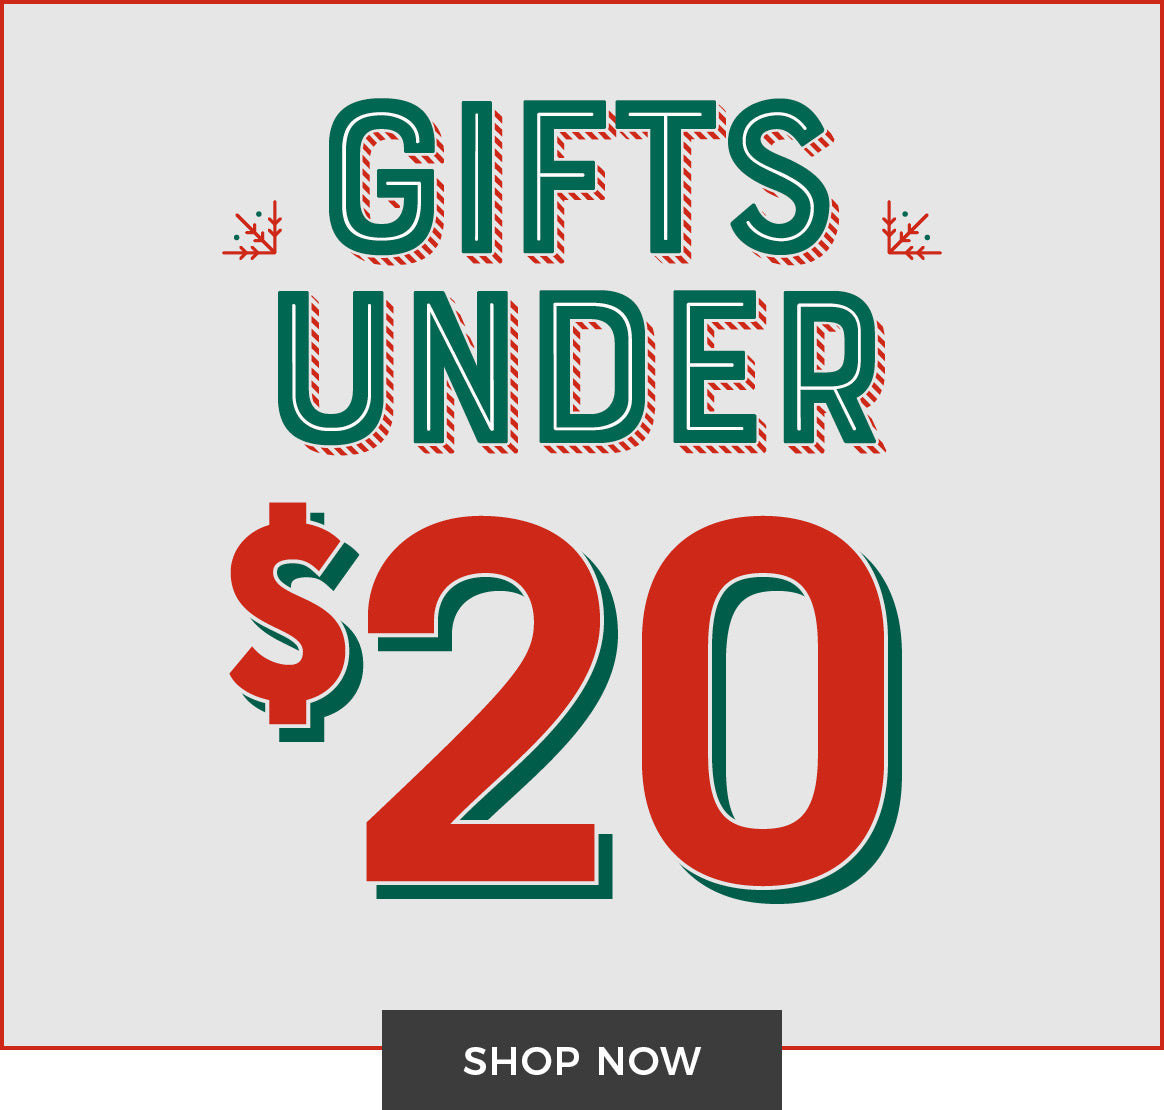 Urban Planet | Holiday Shop - Shop Gifts Under $20